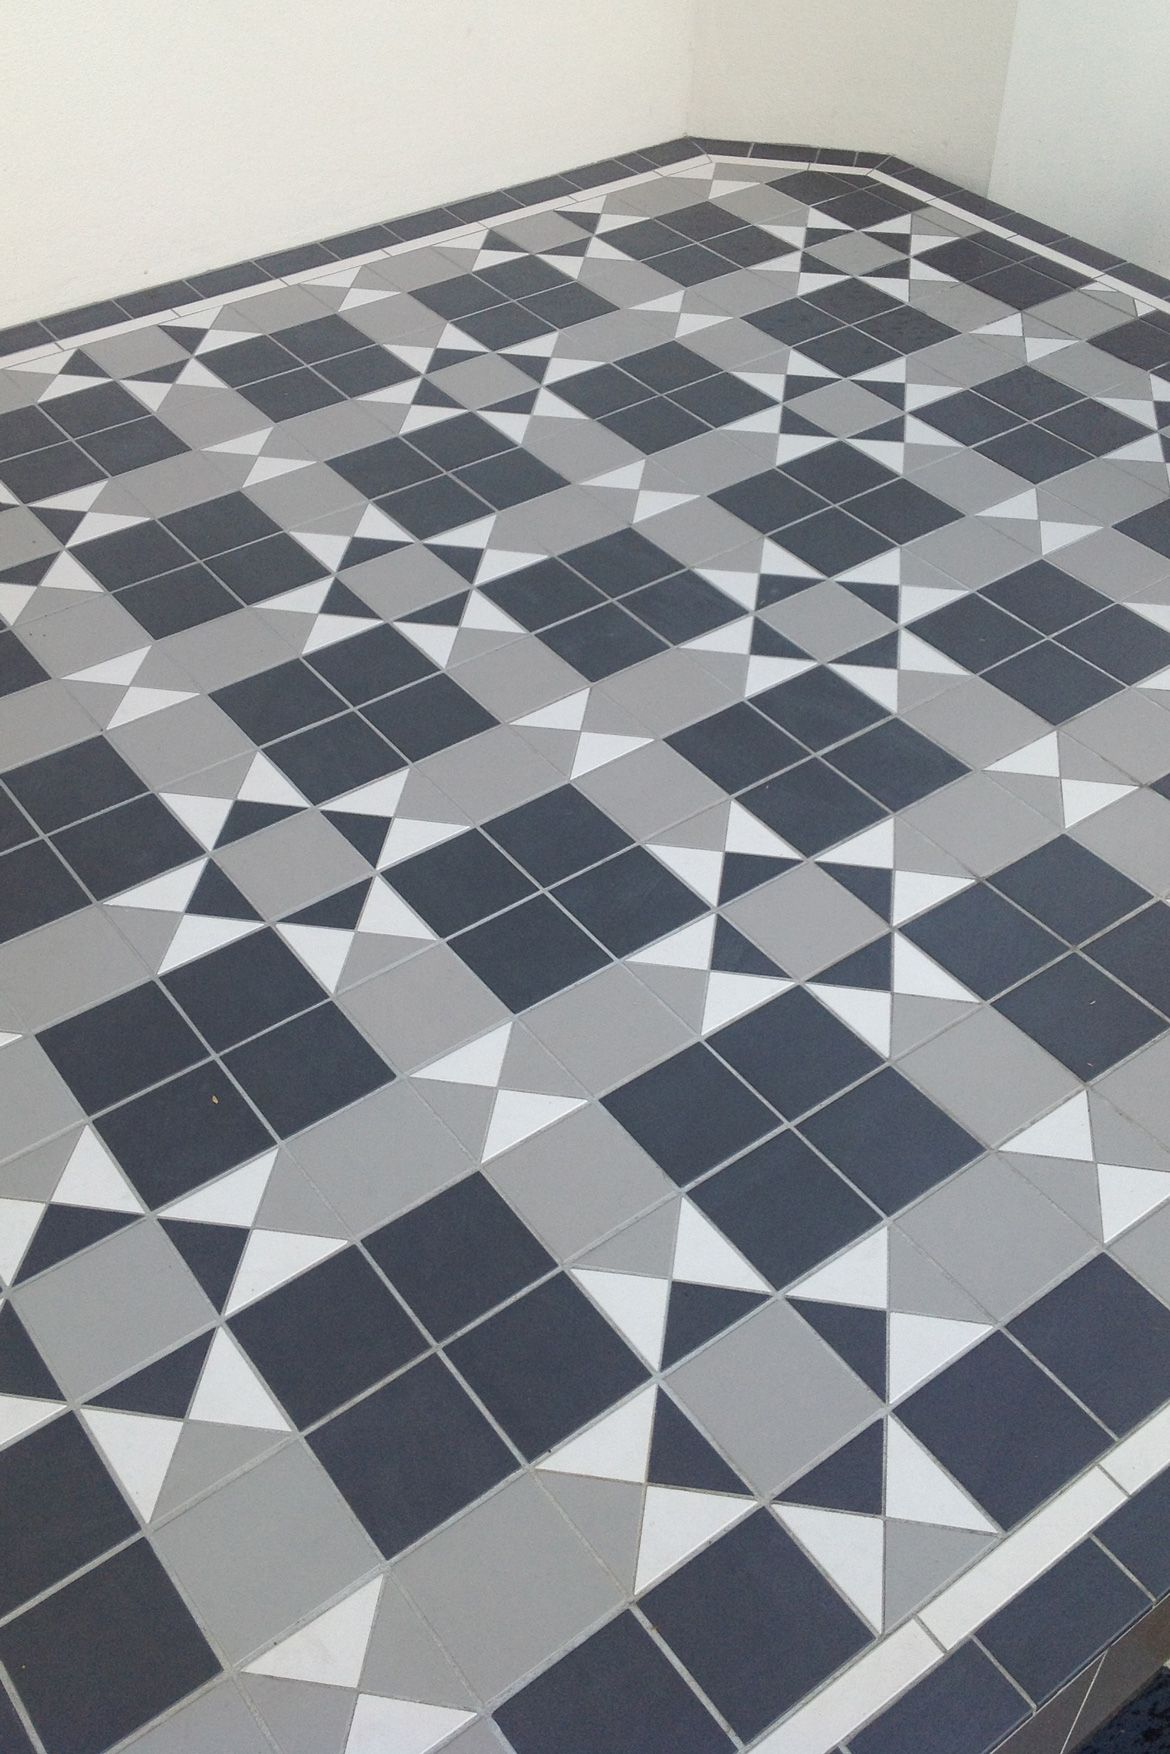 Intrincate Pattern For This Tessellated Floor Tiles Homely